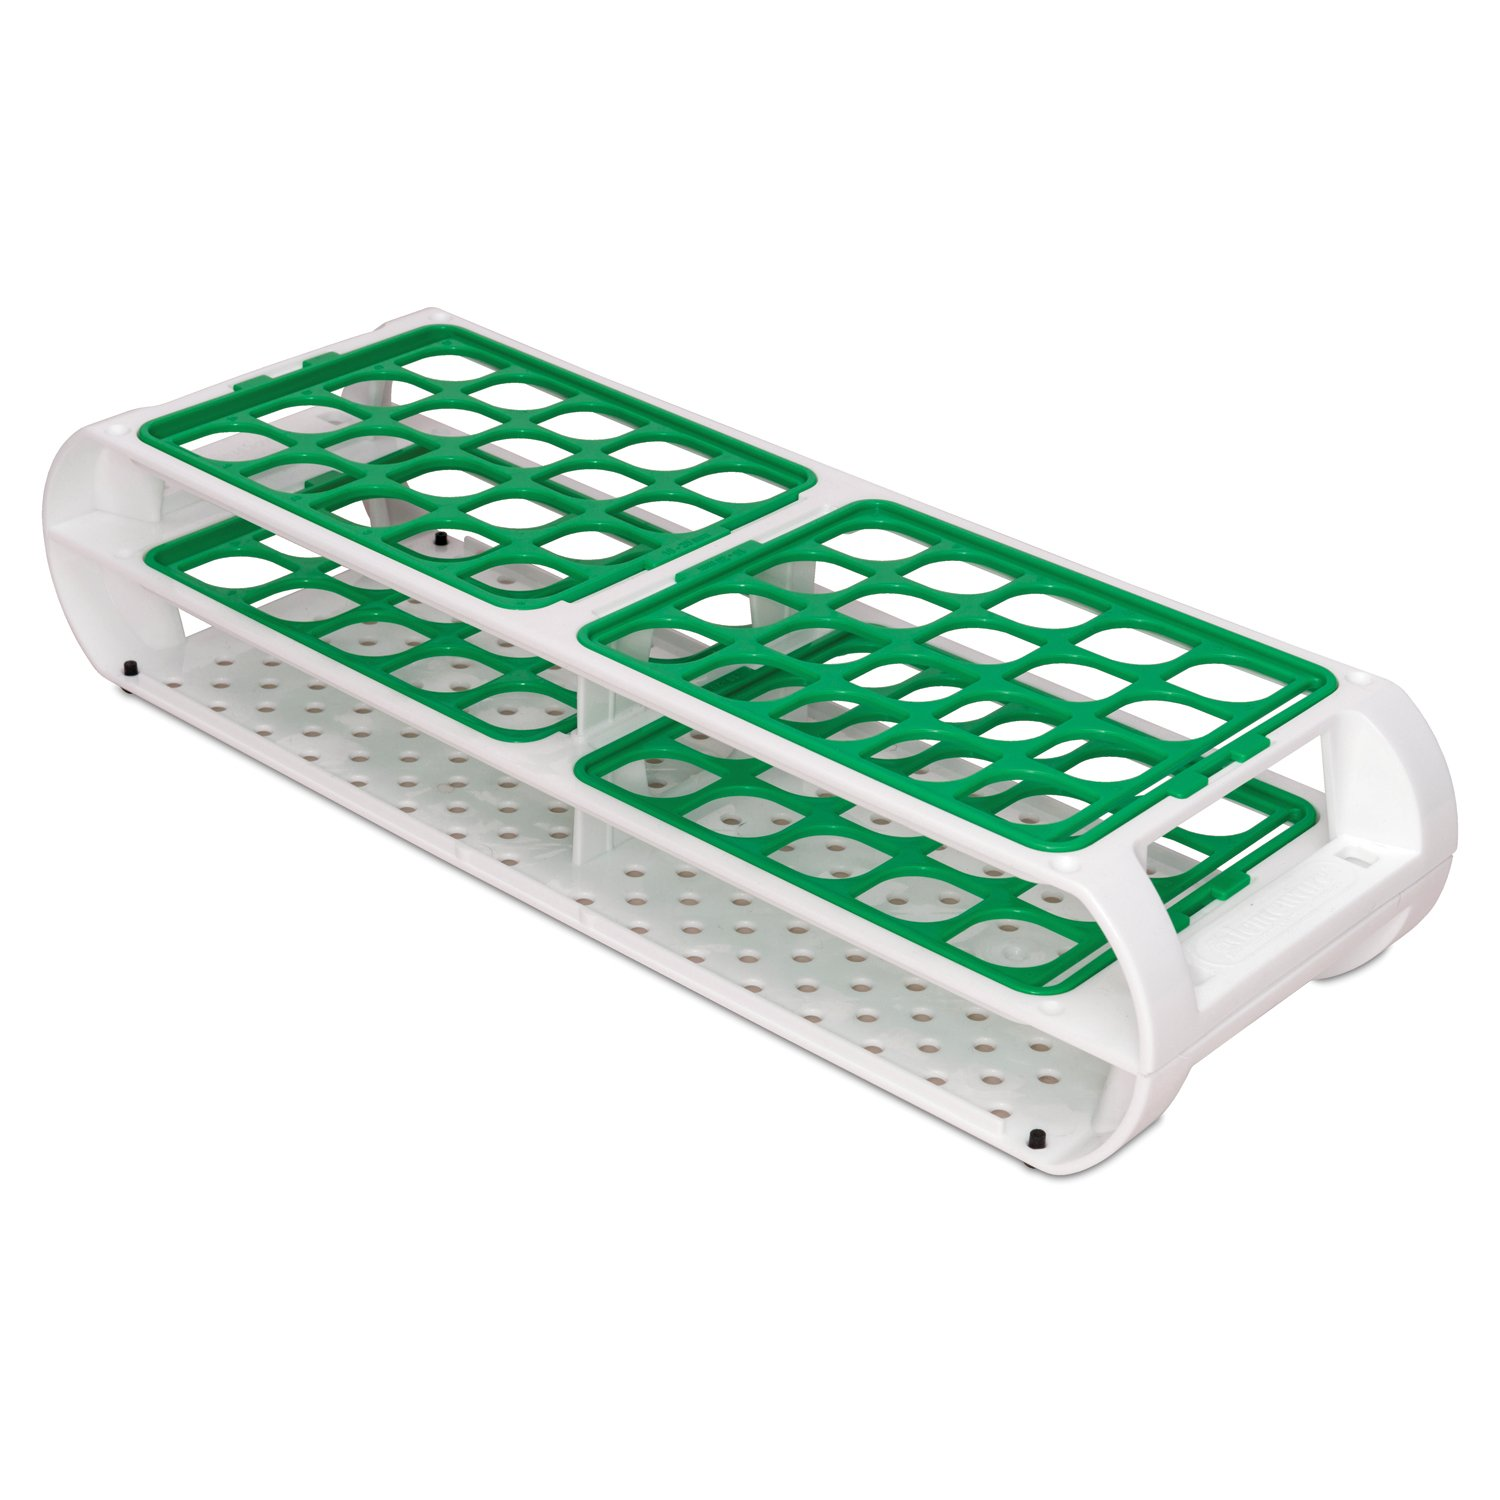 Bel-Art F18745-0012 Switch-Grid Test Tube Rack; 40 Places, 16-20mm, 12½ x 4⅜ x 2⅝ in., Green